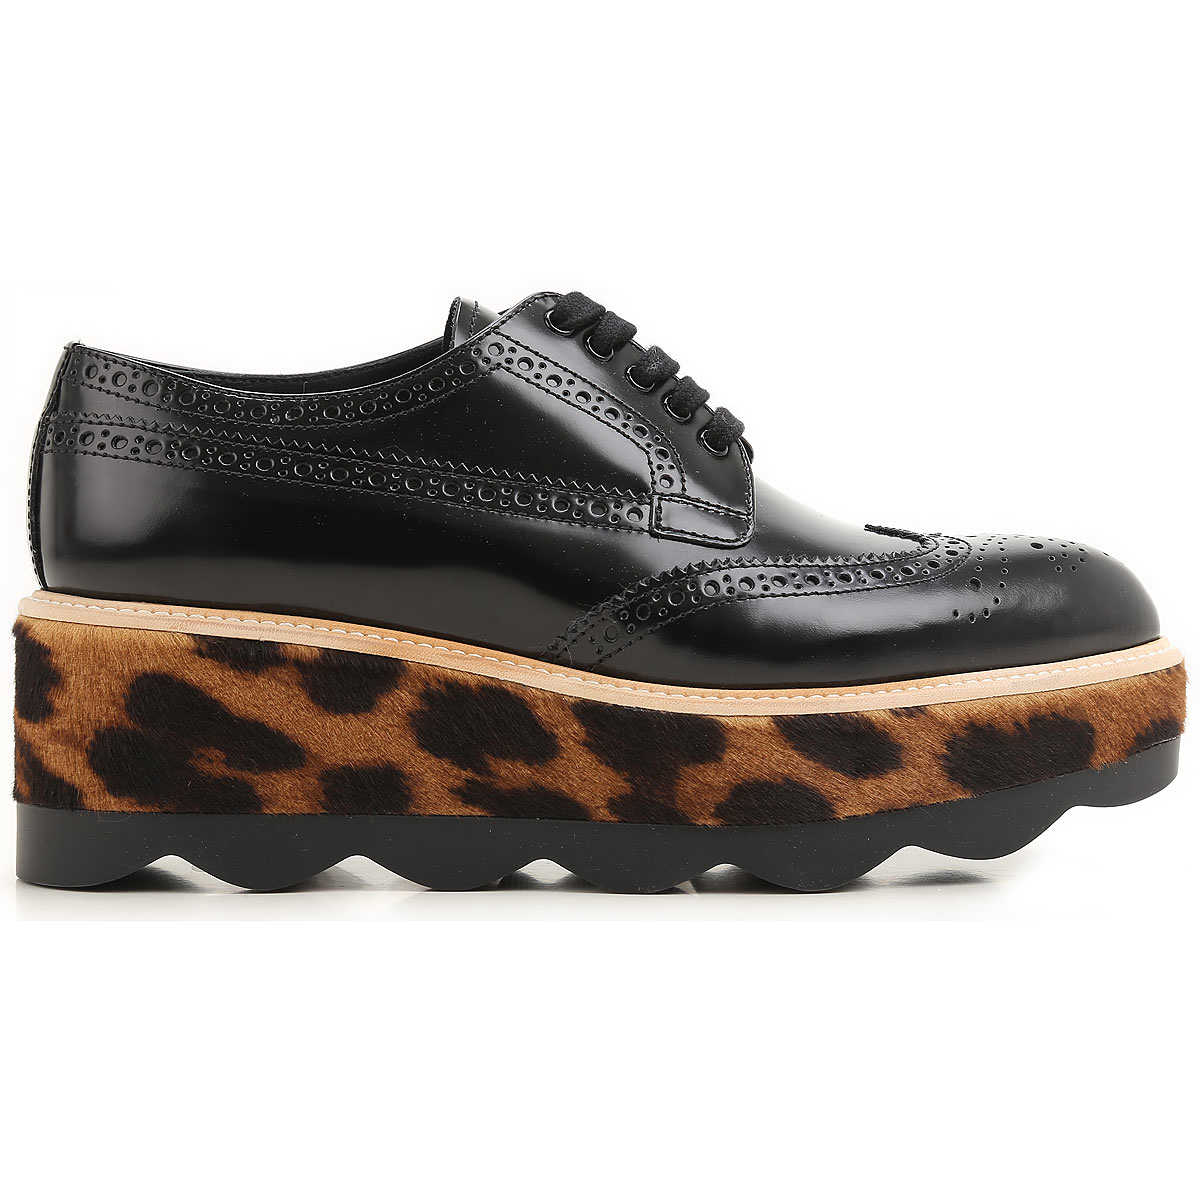 Prada Brogues Oxford Shoes On Sale in Outlet Black UK - GOOFASH